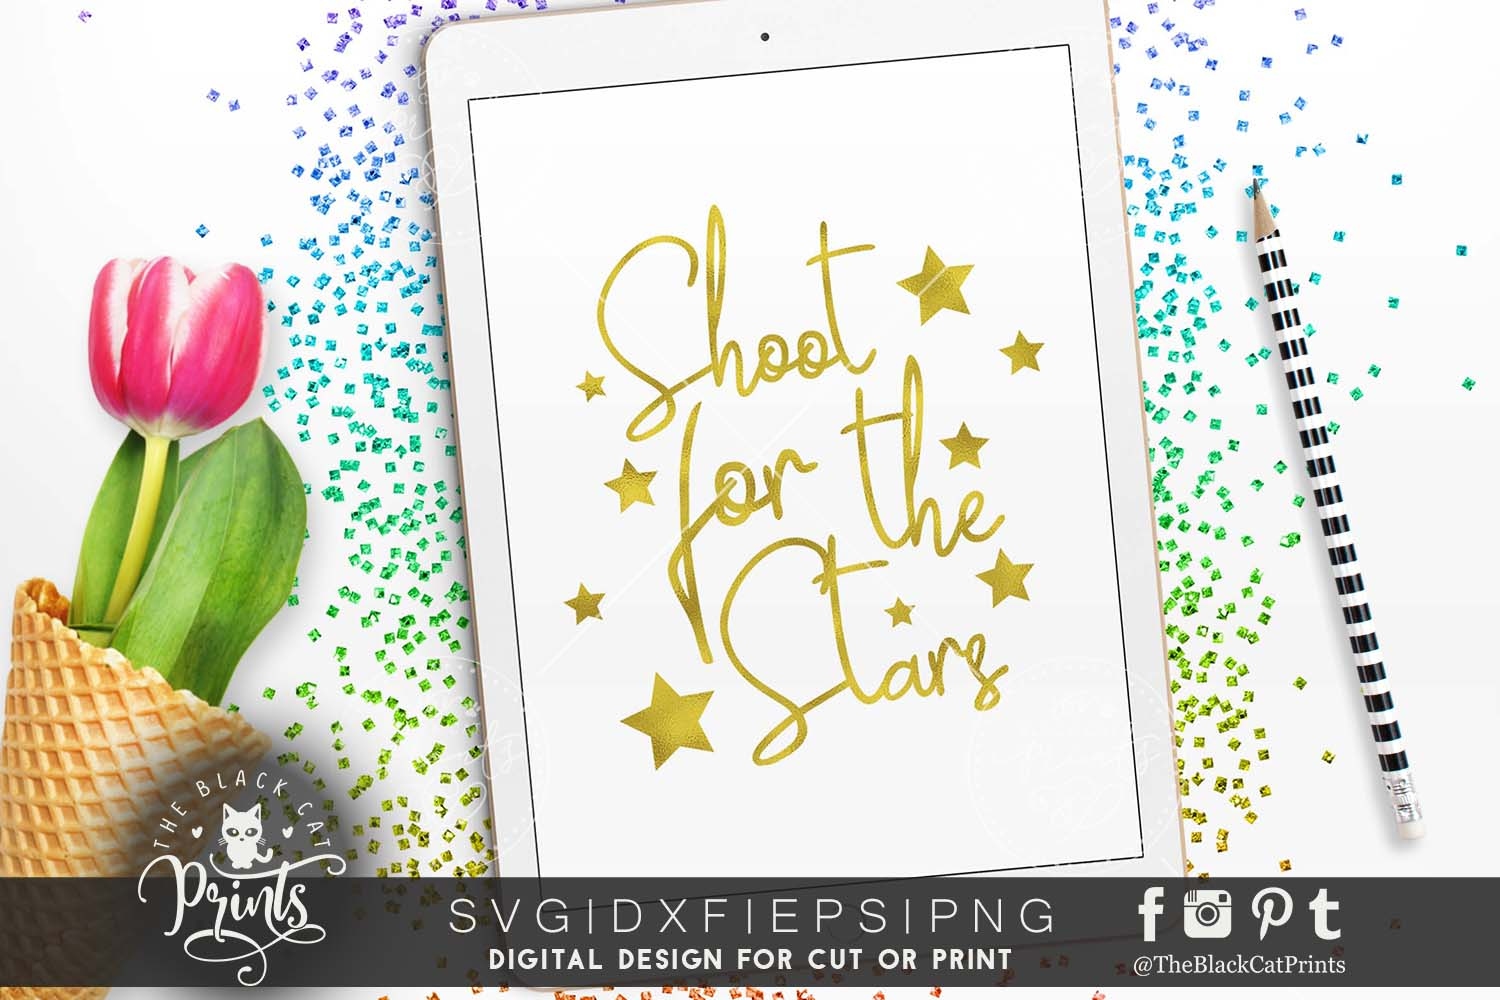 Shoot for the stars SVG PNG EPS DXF example image 2